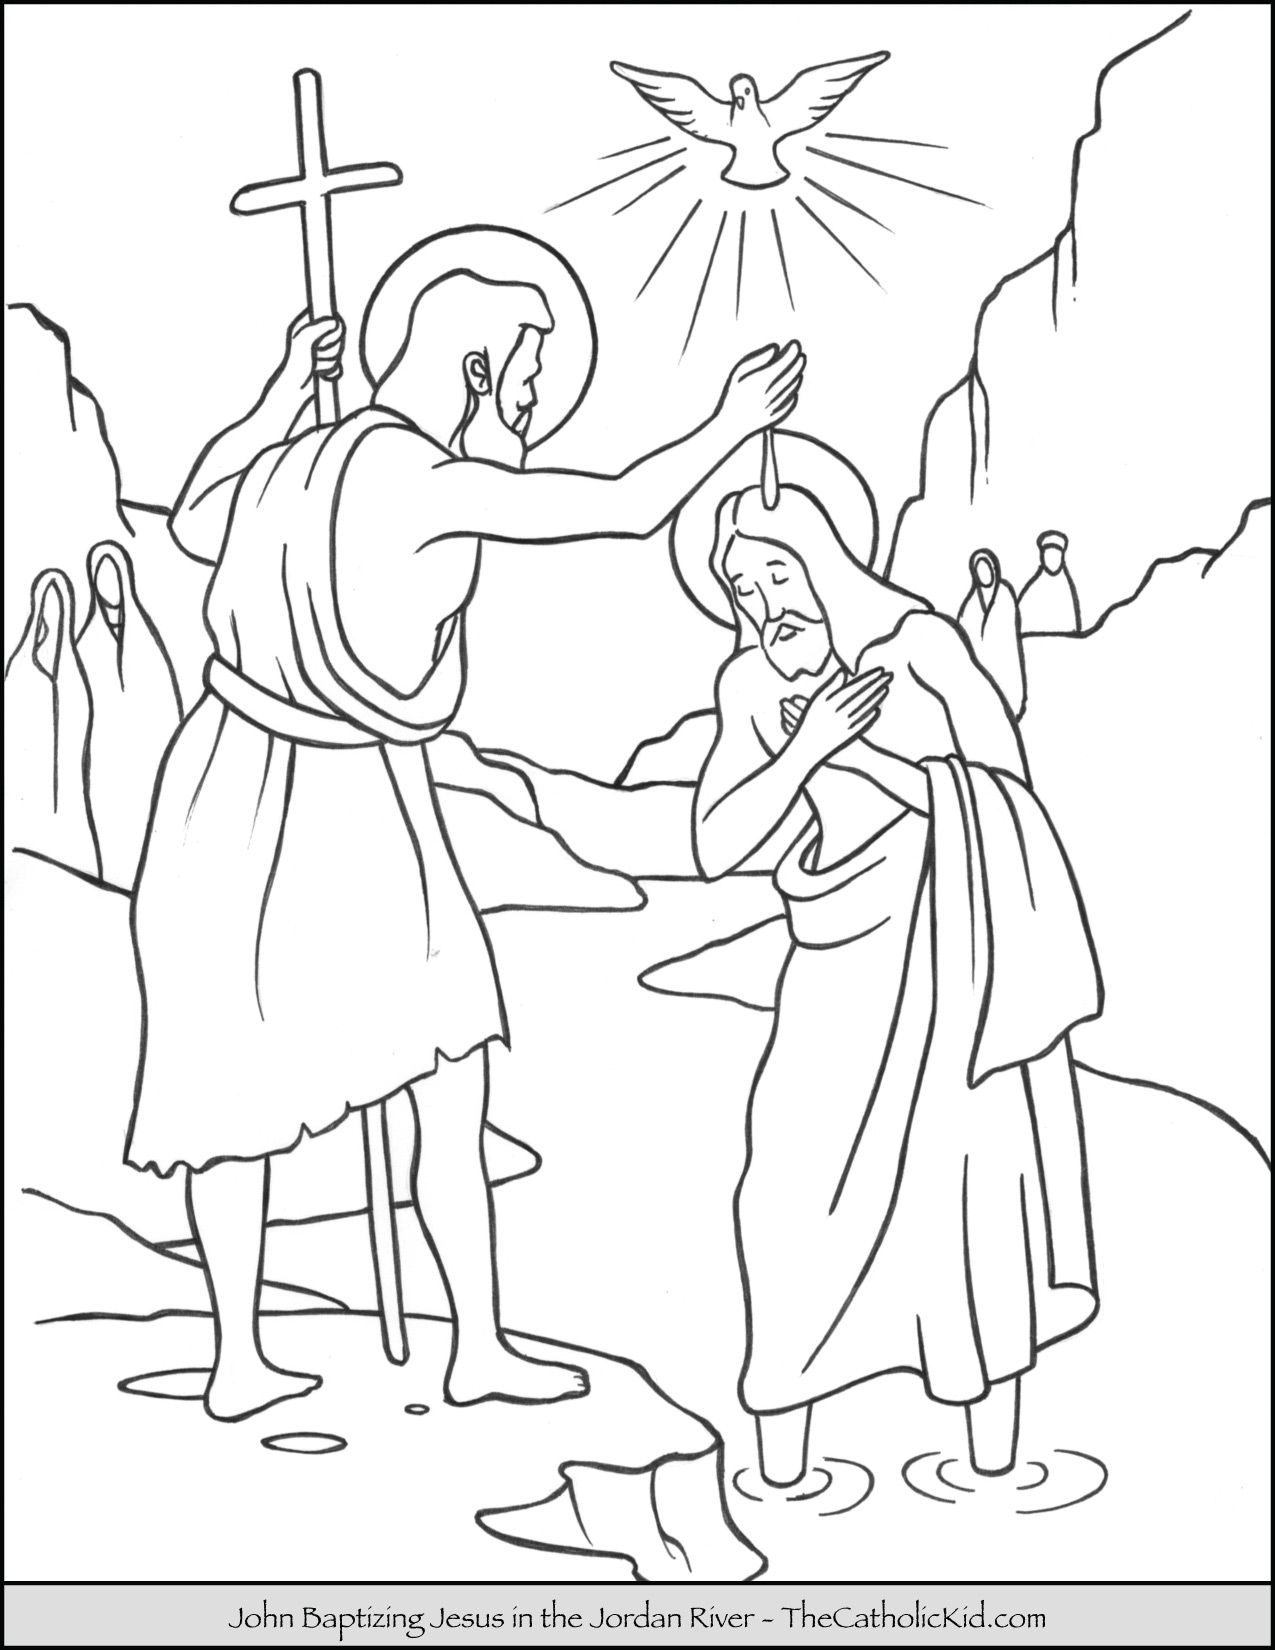 41+ Saint john the baptist coloring page free download